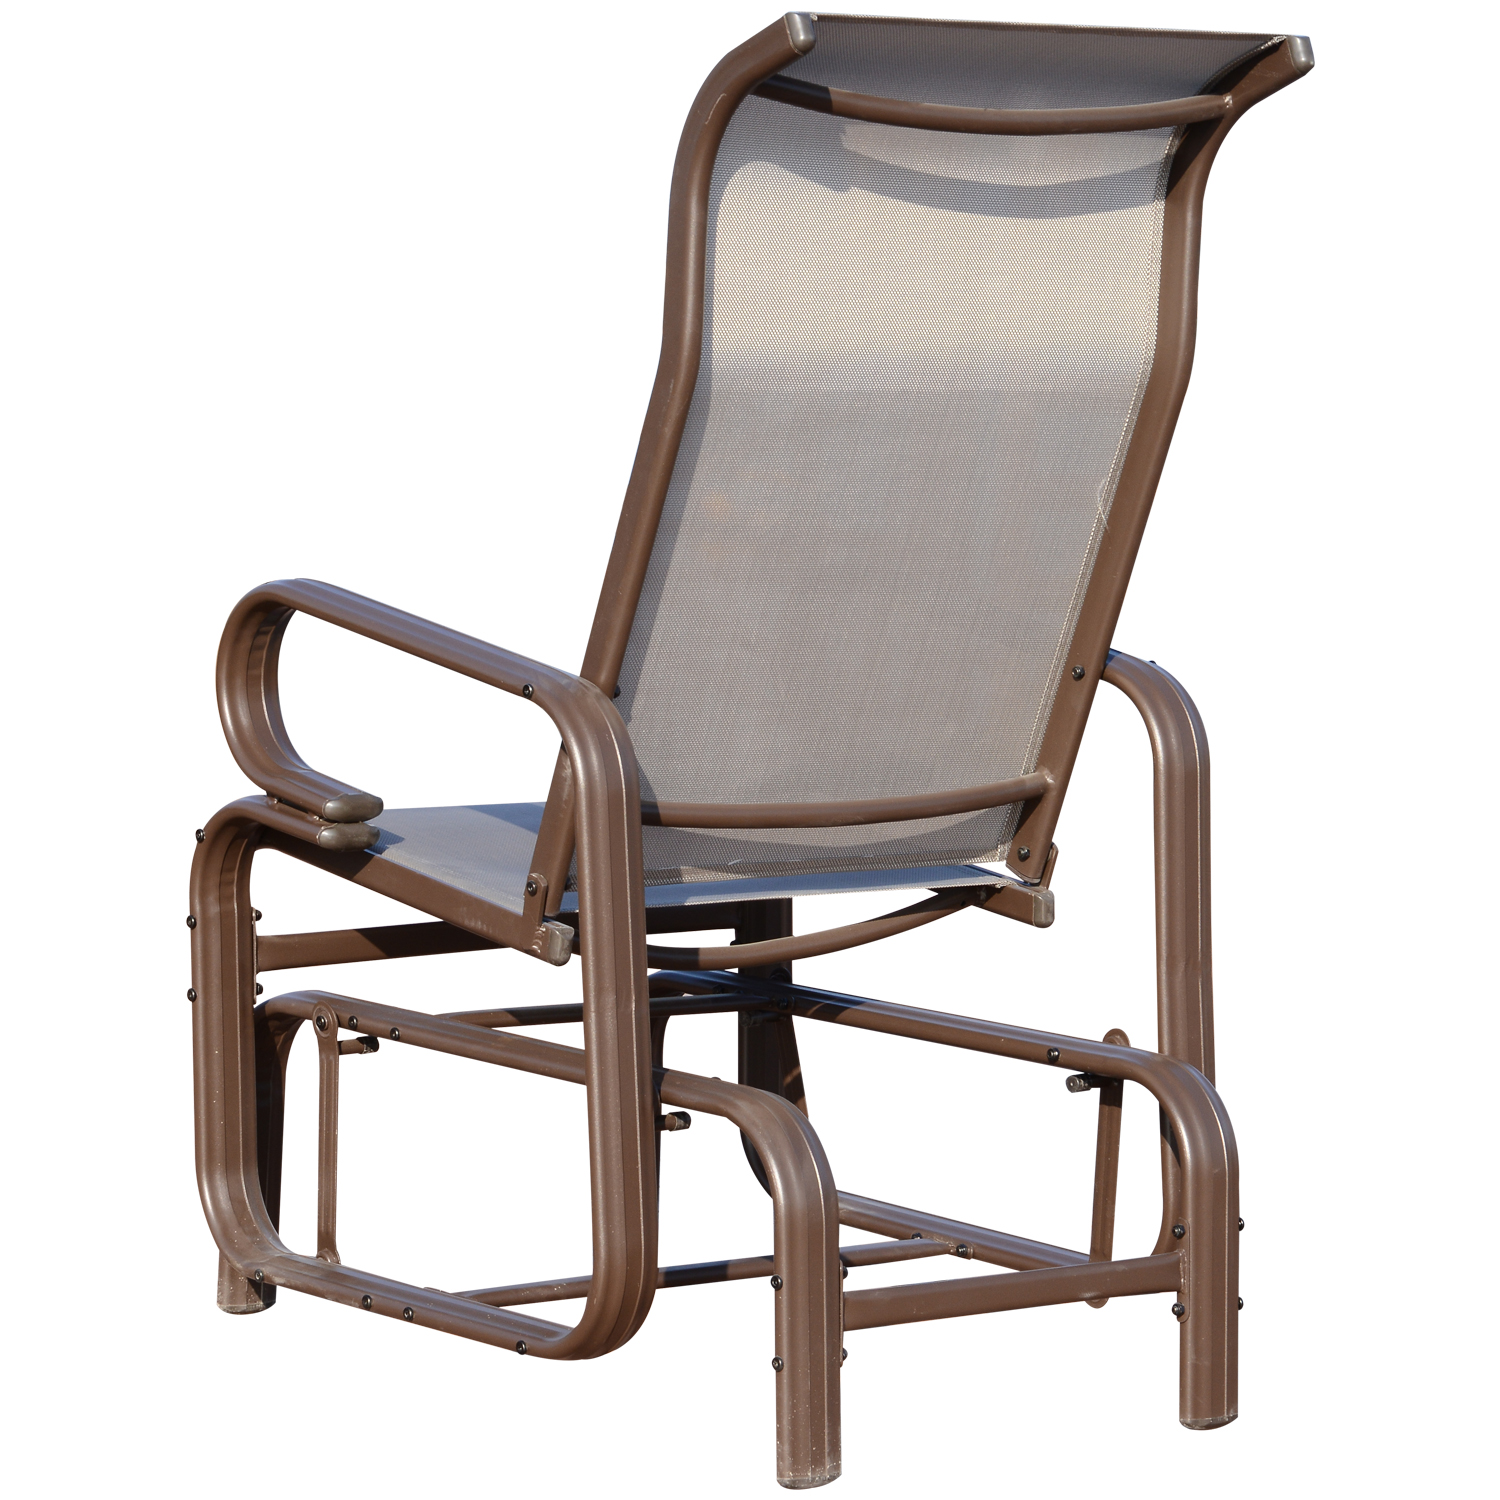 Outsunny Texteline Glider Chair Garden Swing Seat Outdoor ...